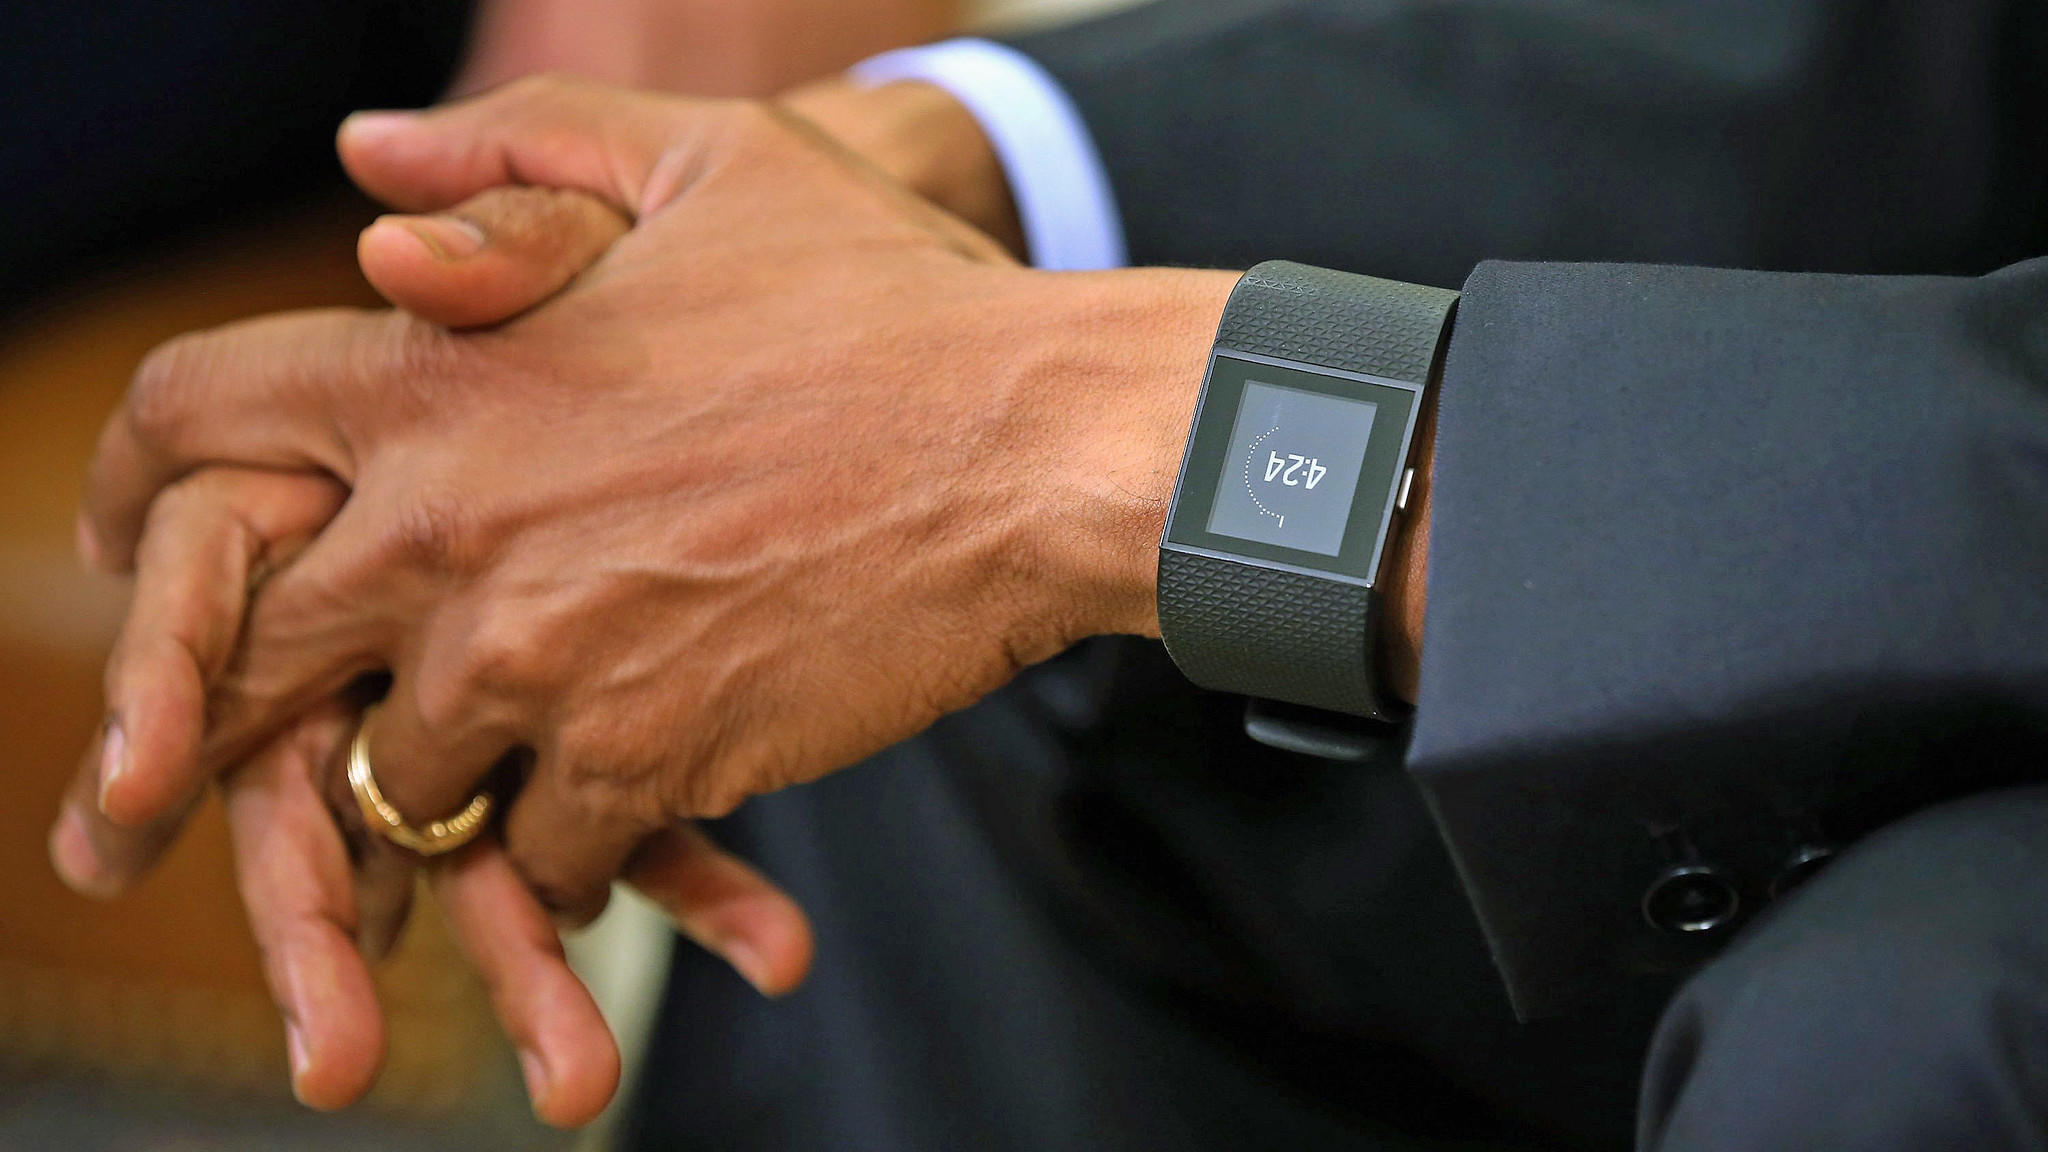 The 44th president wore a Fitbit. (Chip Somodevilla / Getty Images)